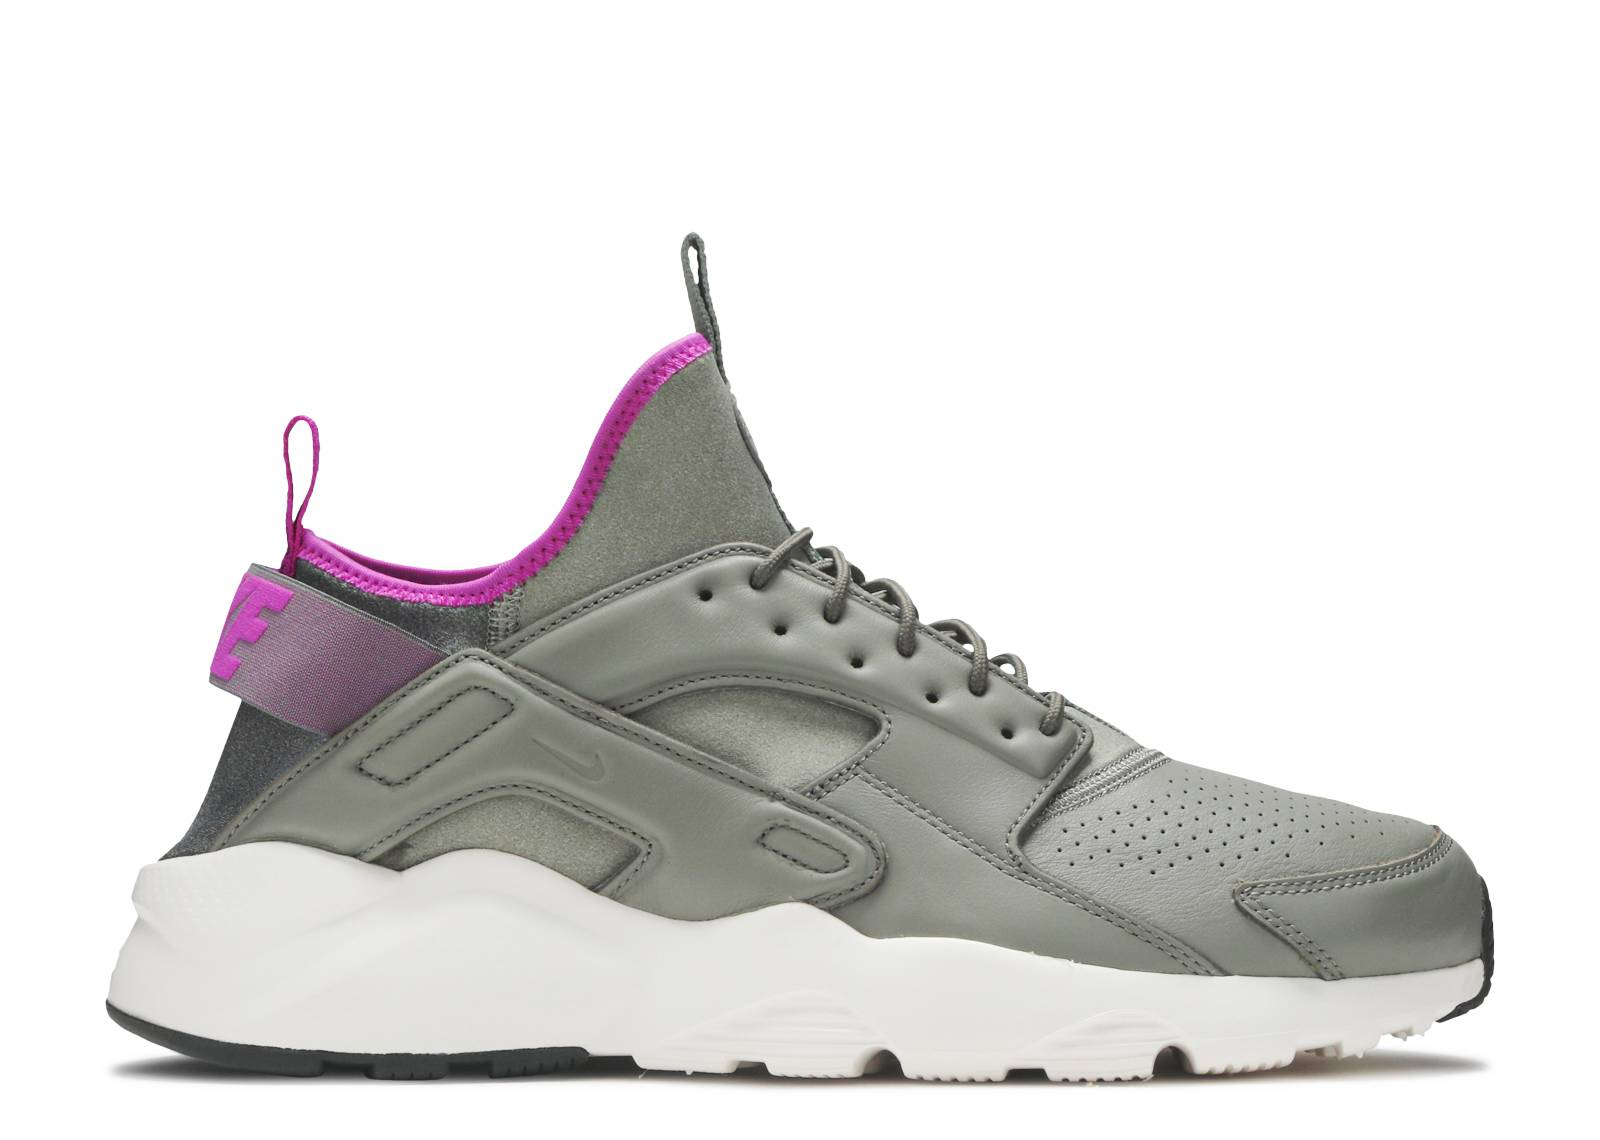 fd7da41e058be Nike Air Huarache Run Ultra Se - Nike - 875841 003 - dark stucco ...